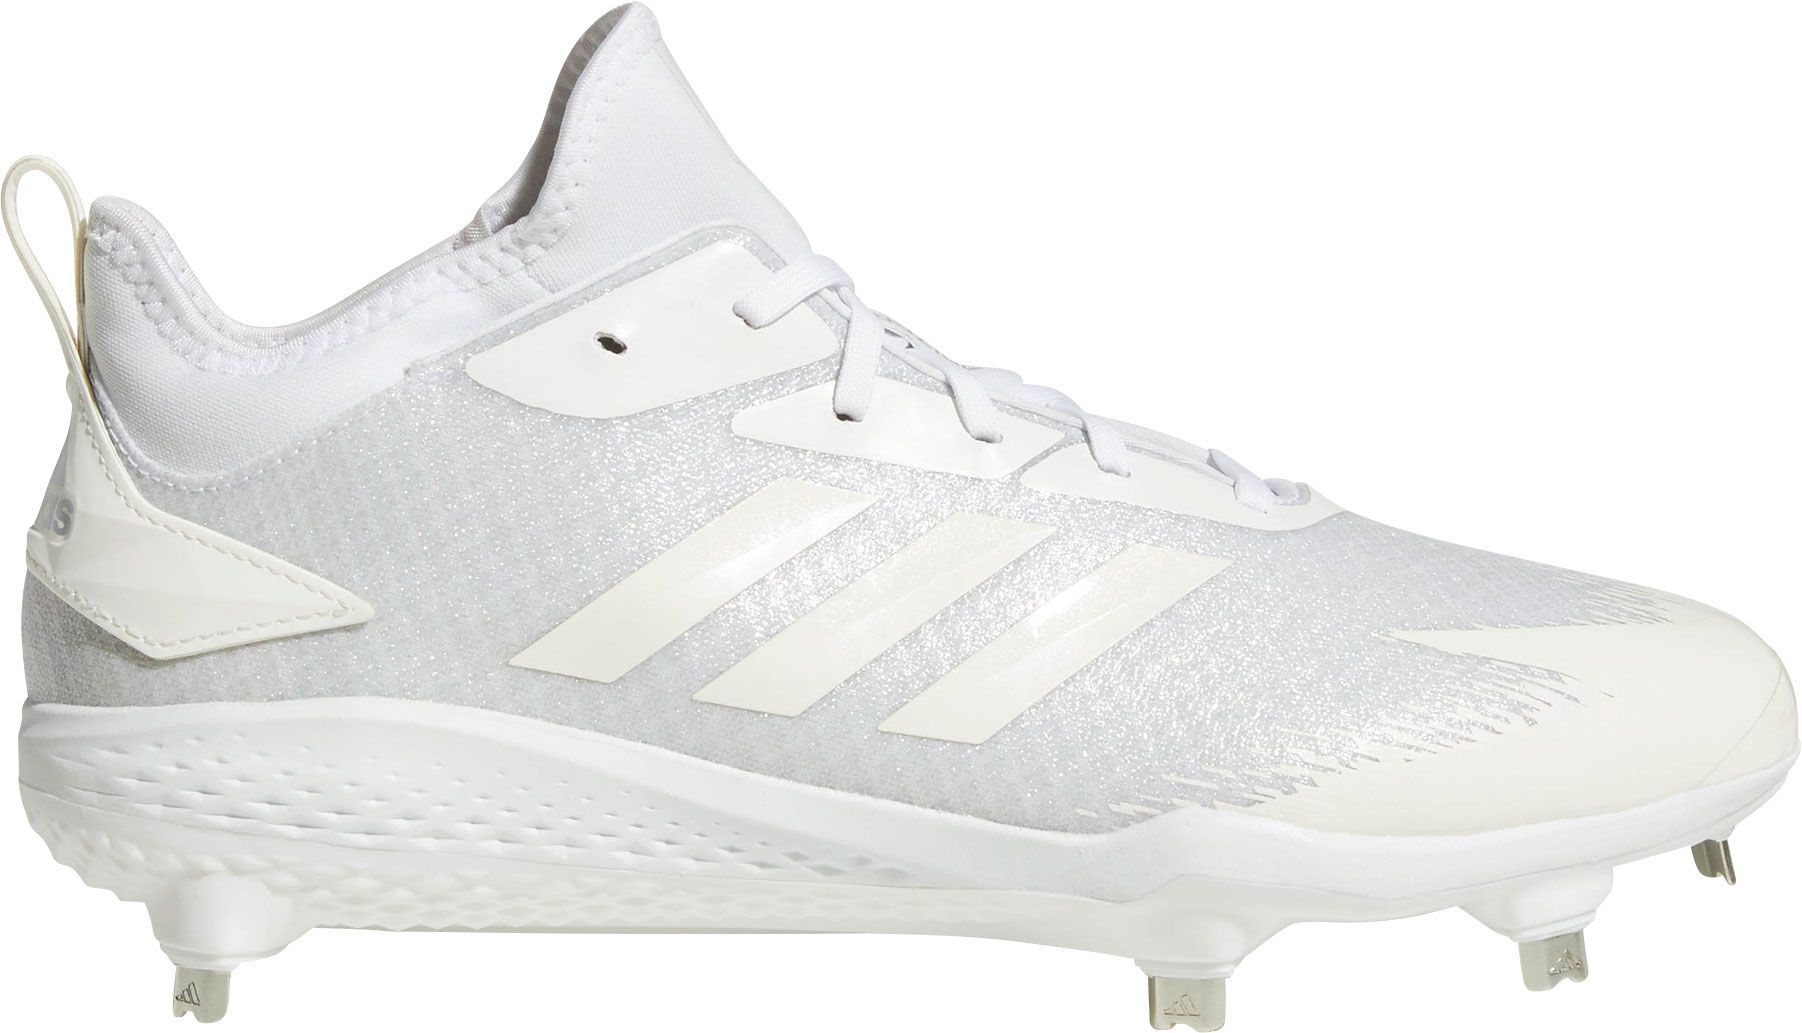 check out 562bd 8103b adidas Mens adiZERO Afterburner V Dipped Metal Baseball Cleats, Size 7.5,  White